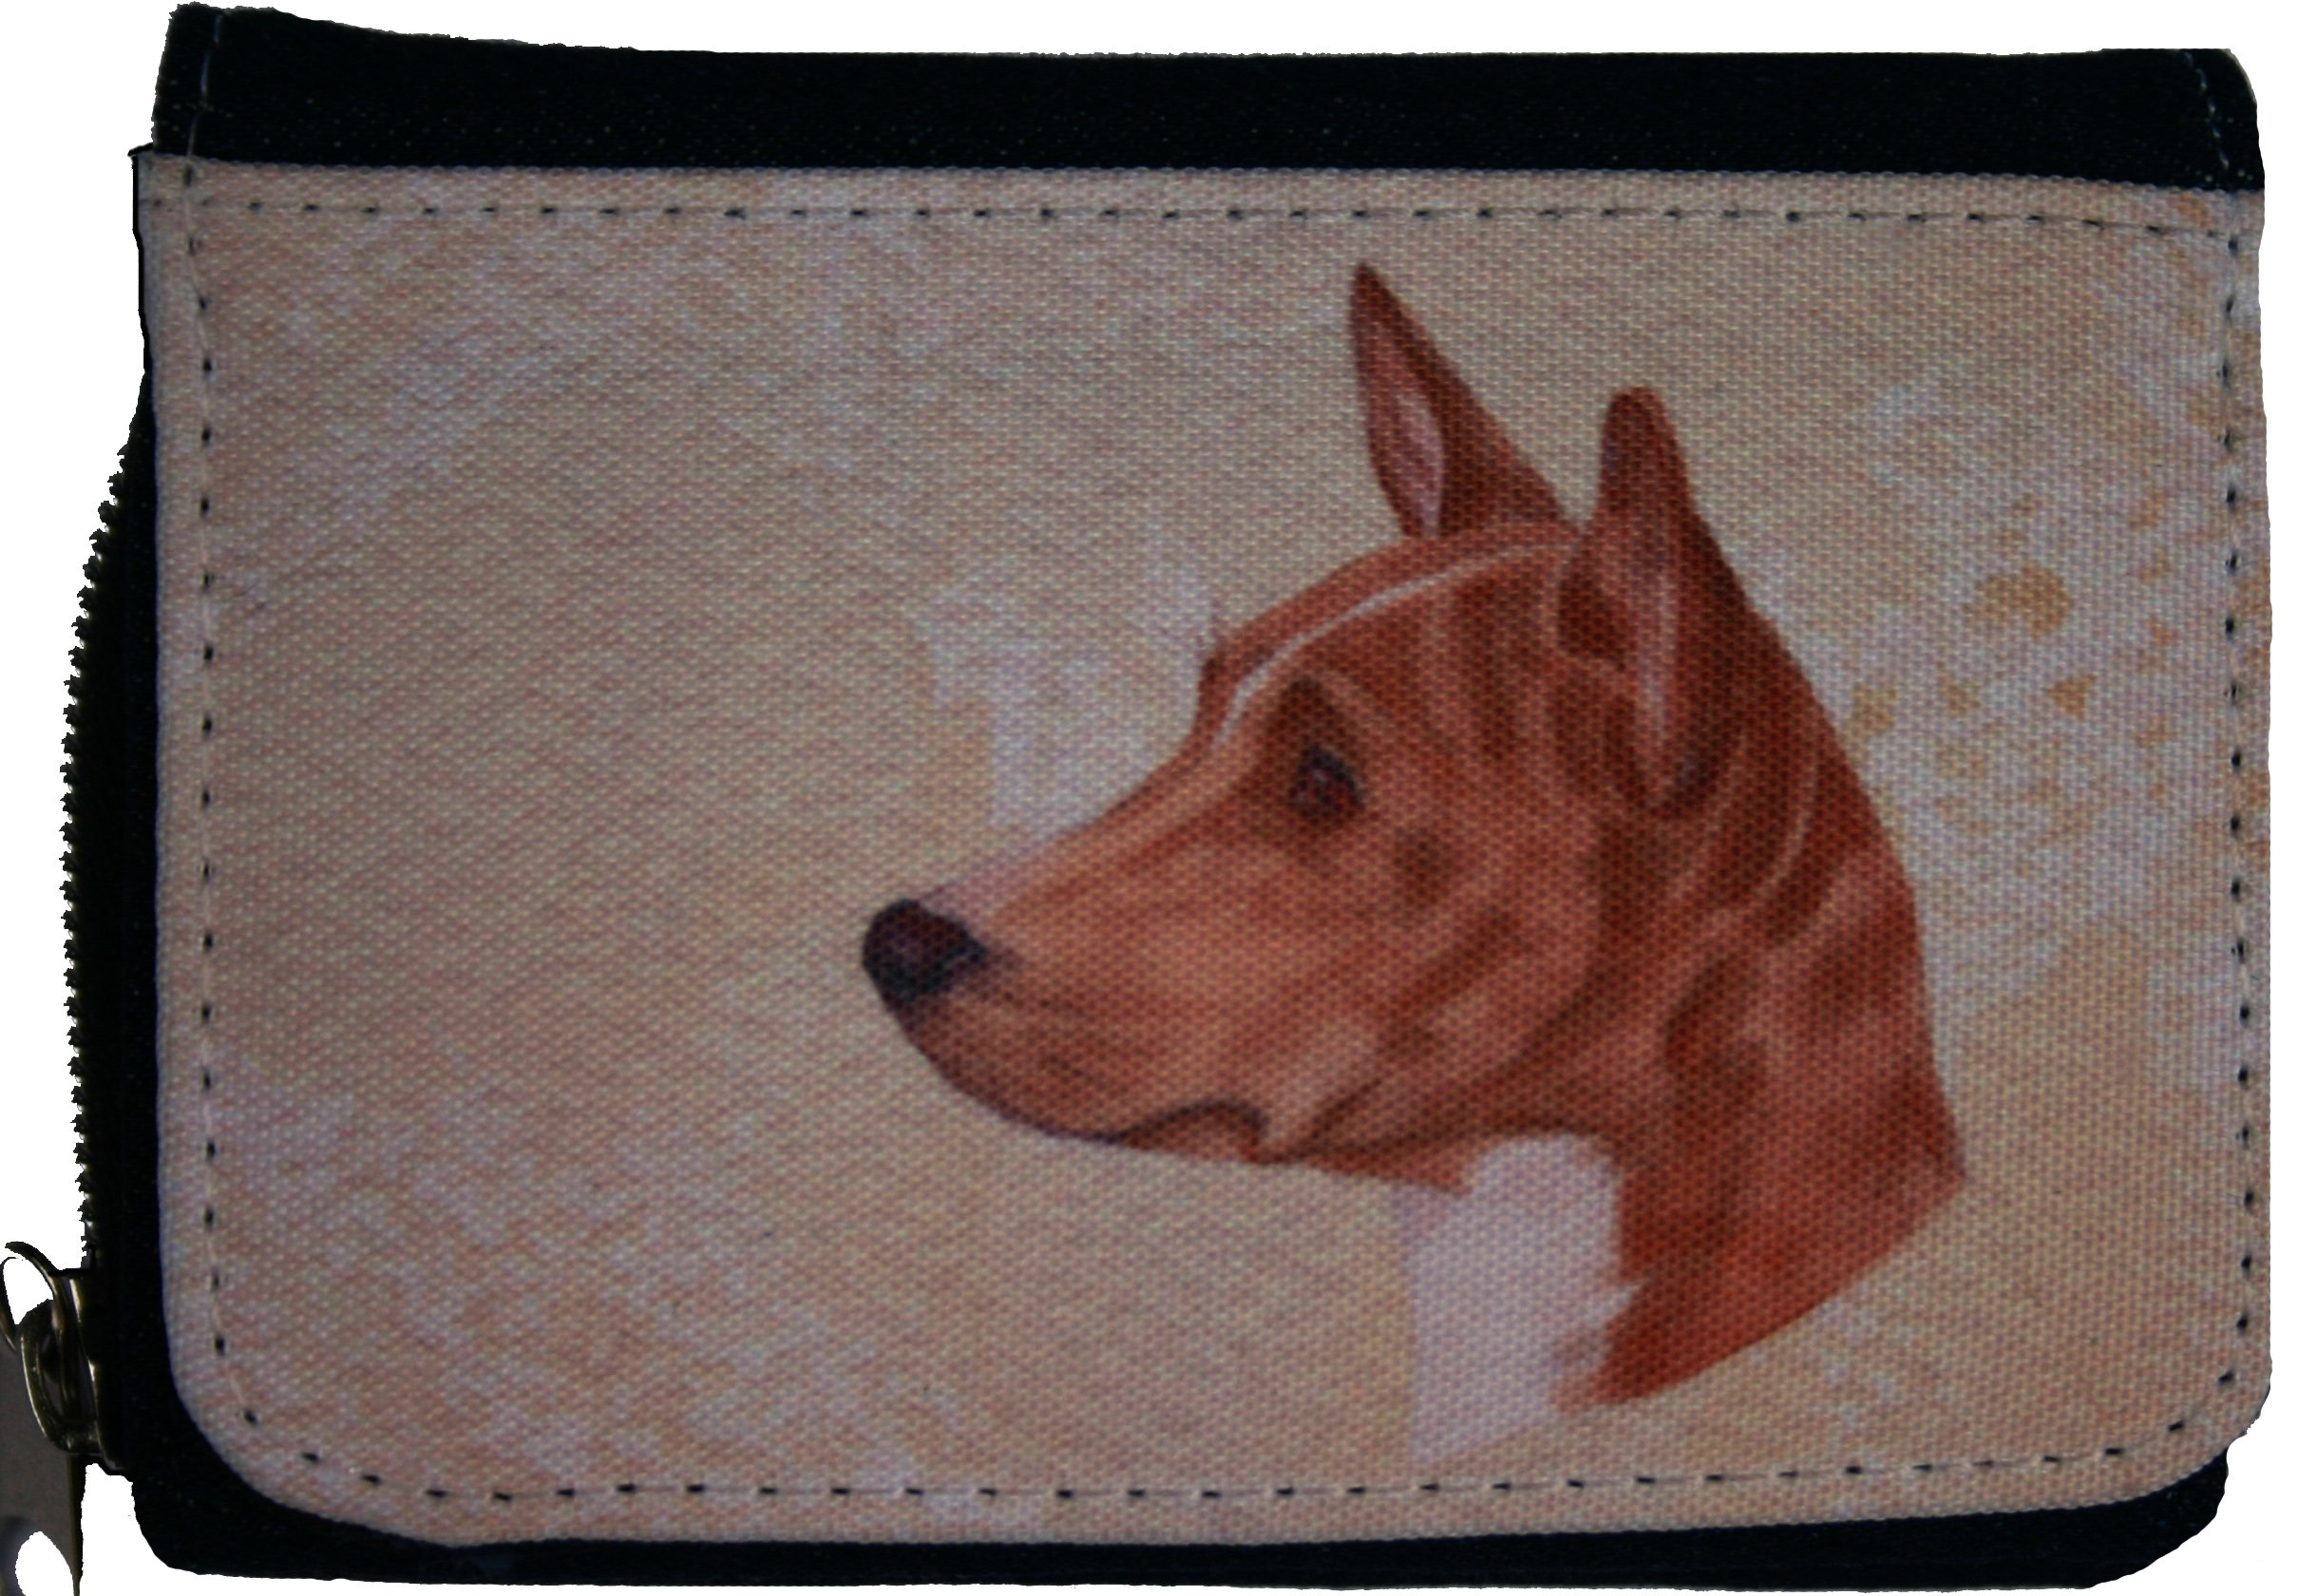 BASENJI DOG DENIM TEXTILE PURSE design Sandra Coen